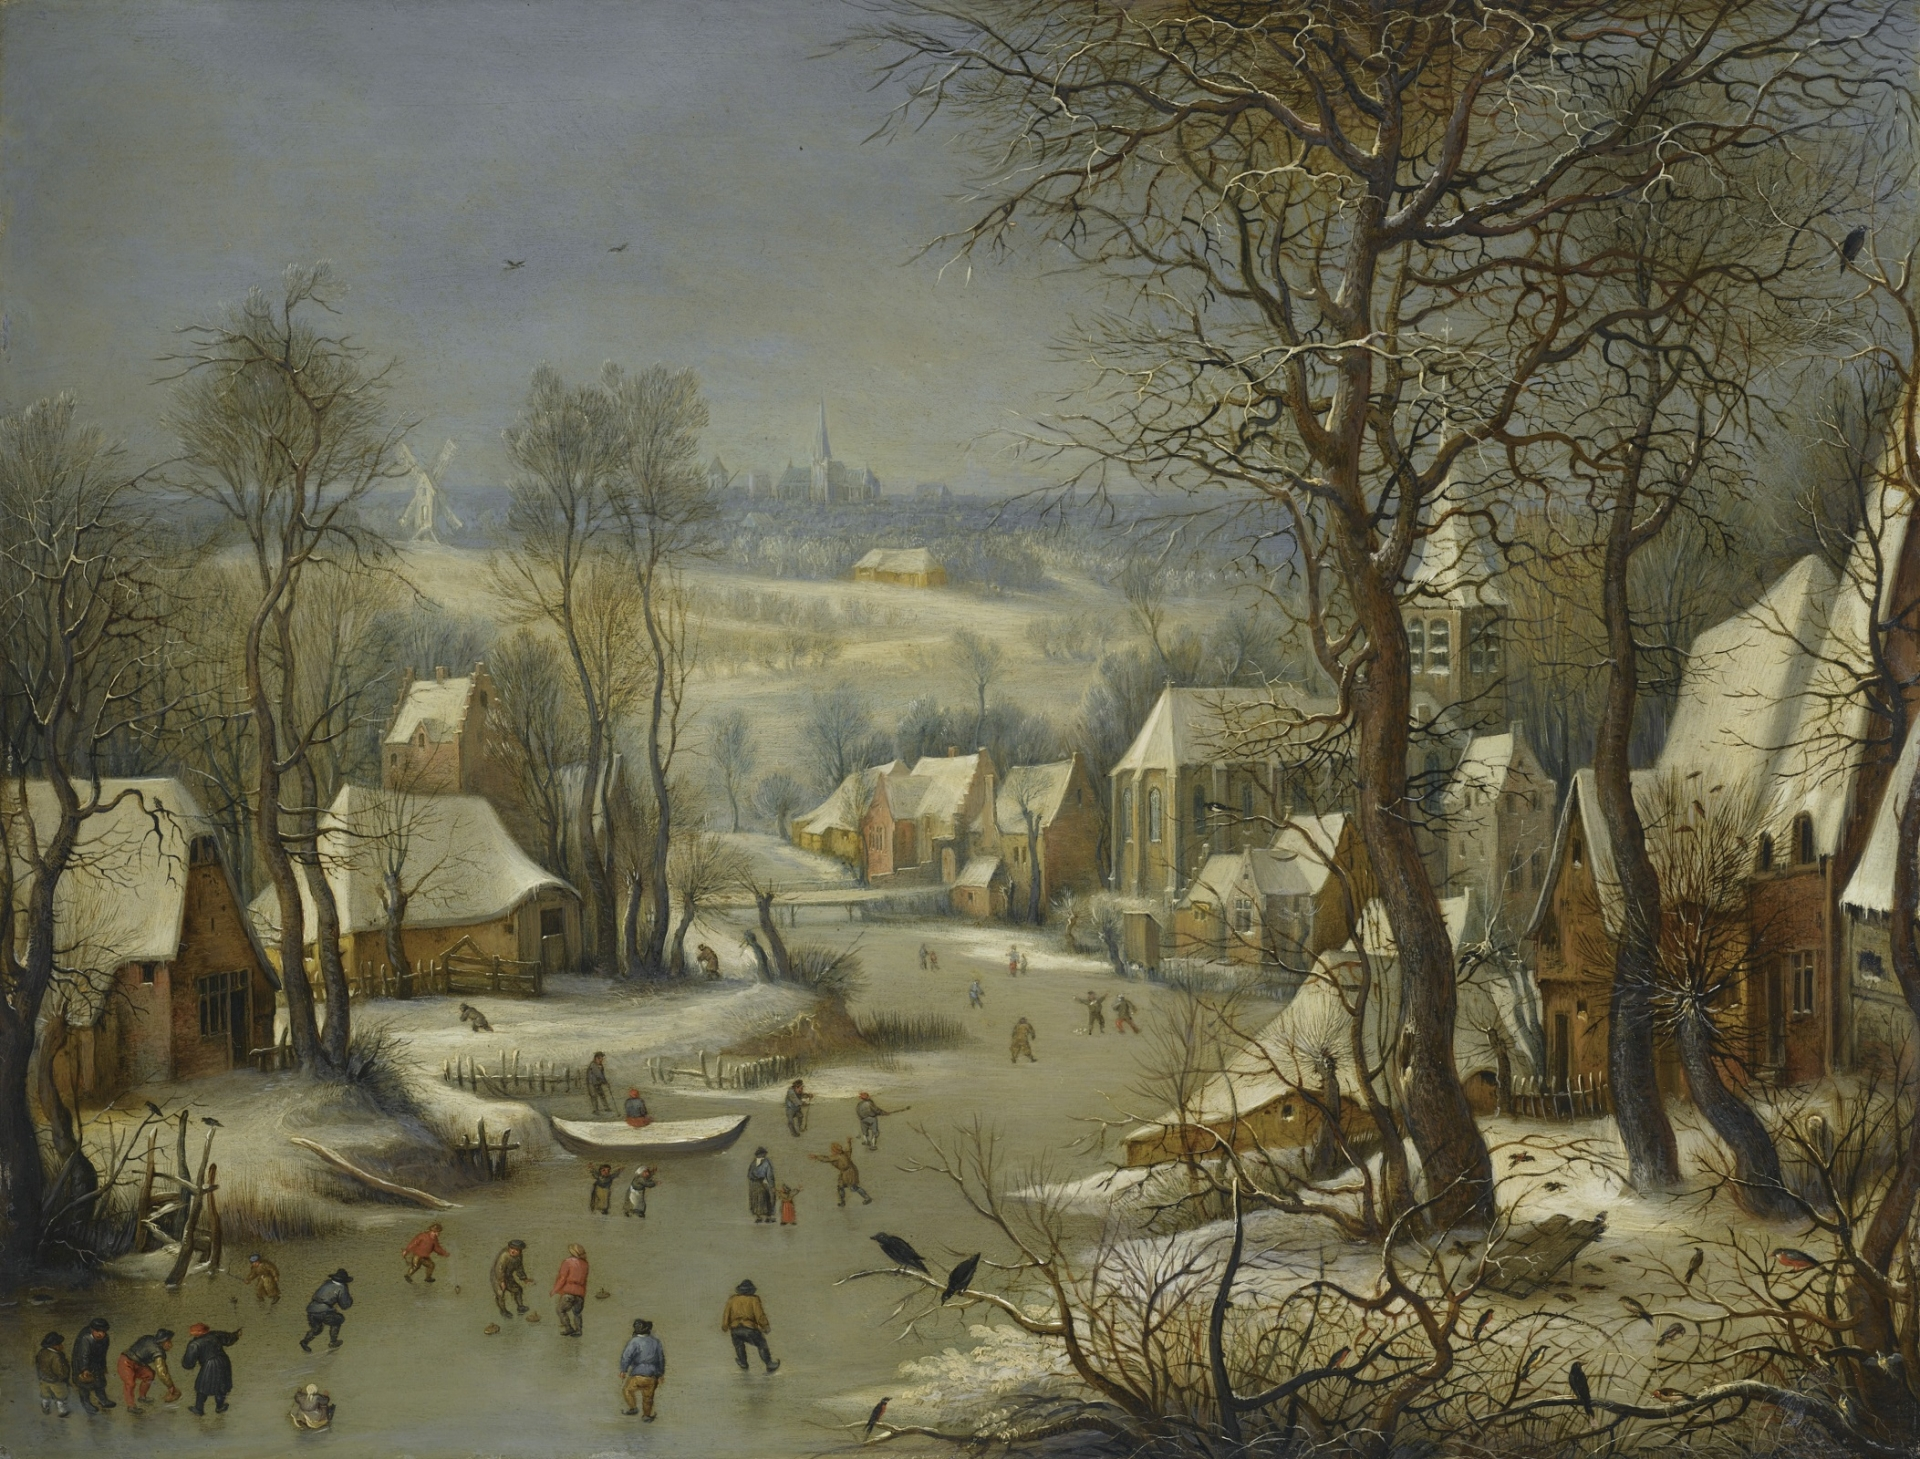 Winter by Pieter Brueghel with Antwerp in the Background